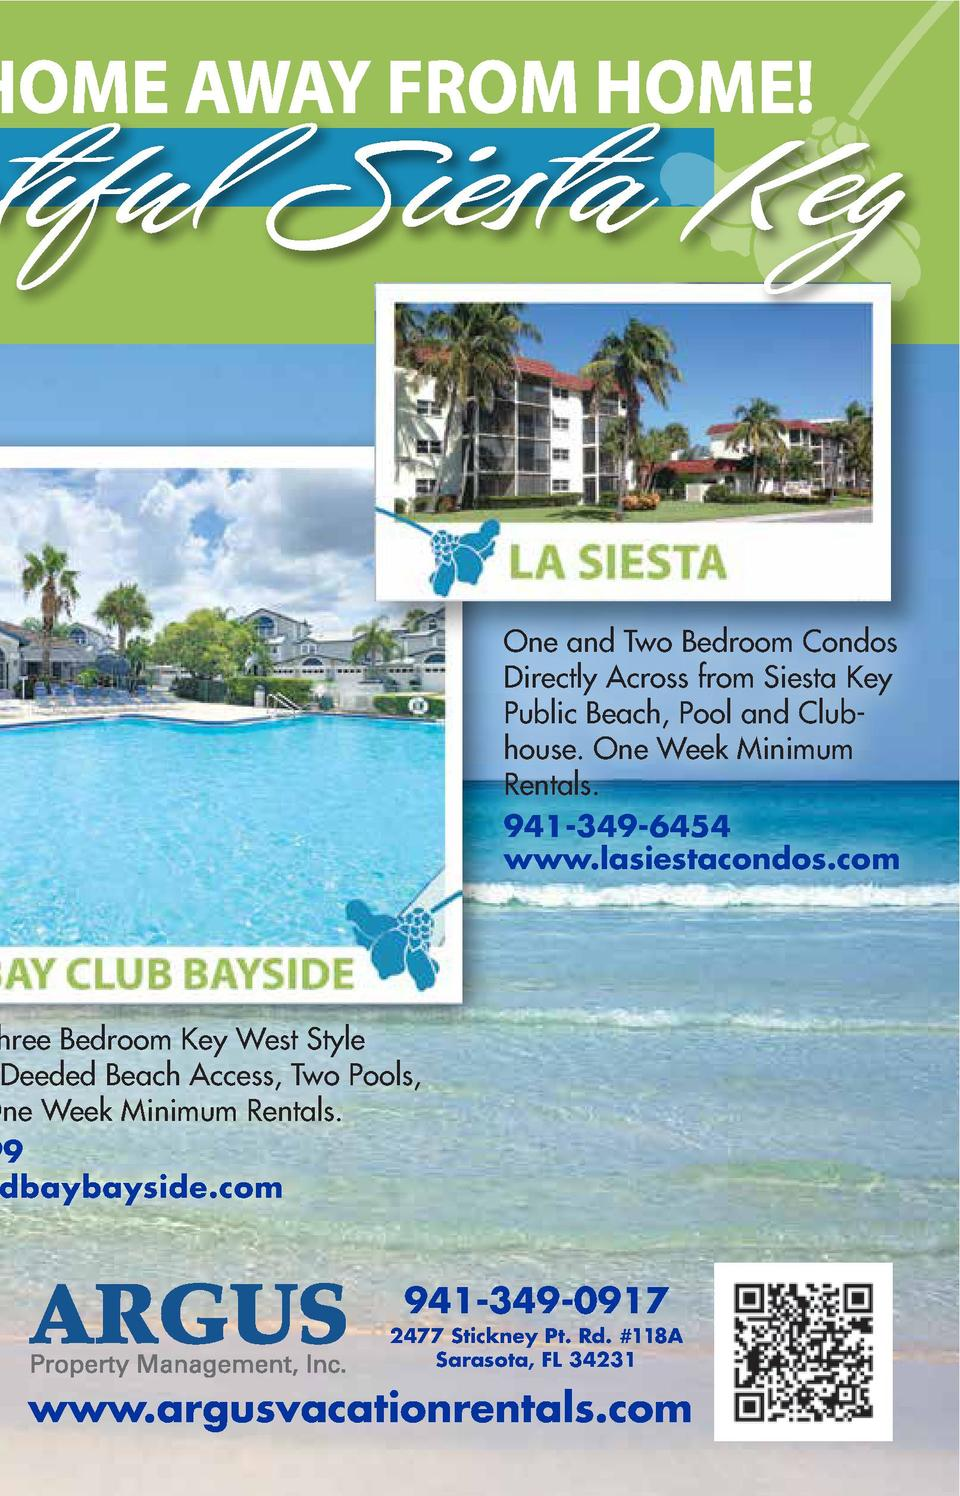 utiful Siesta Key One and Two Bedroom Condos Directly Across from Siesta Key Public Beach, Pool and Clubhouse. One Week Mi...